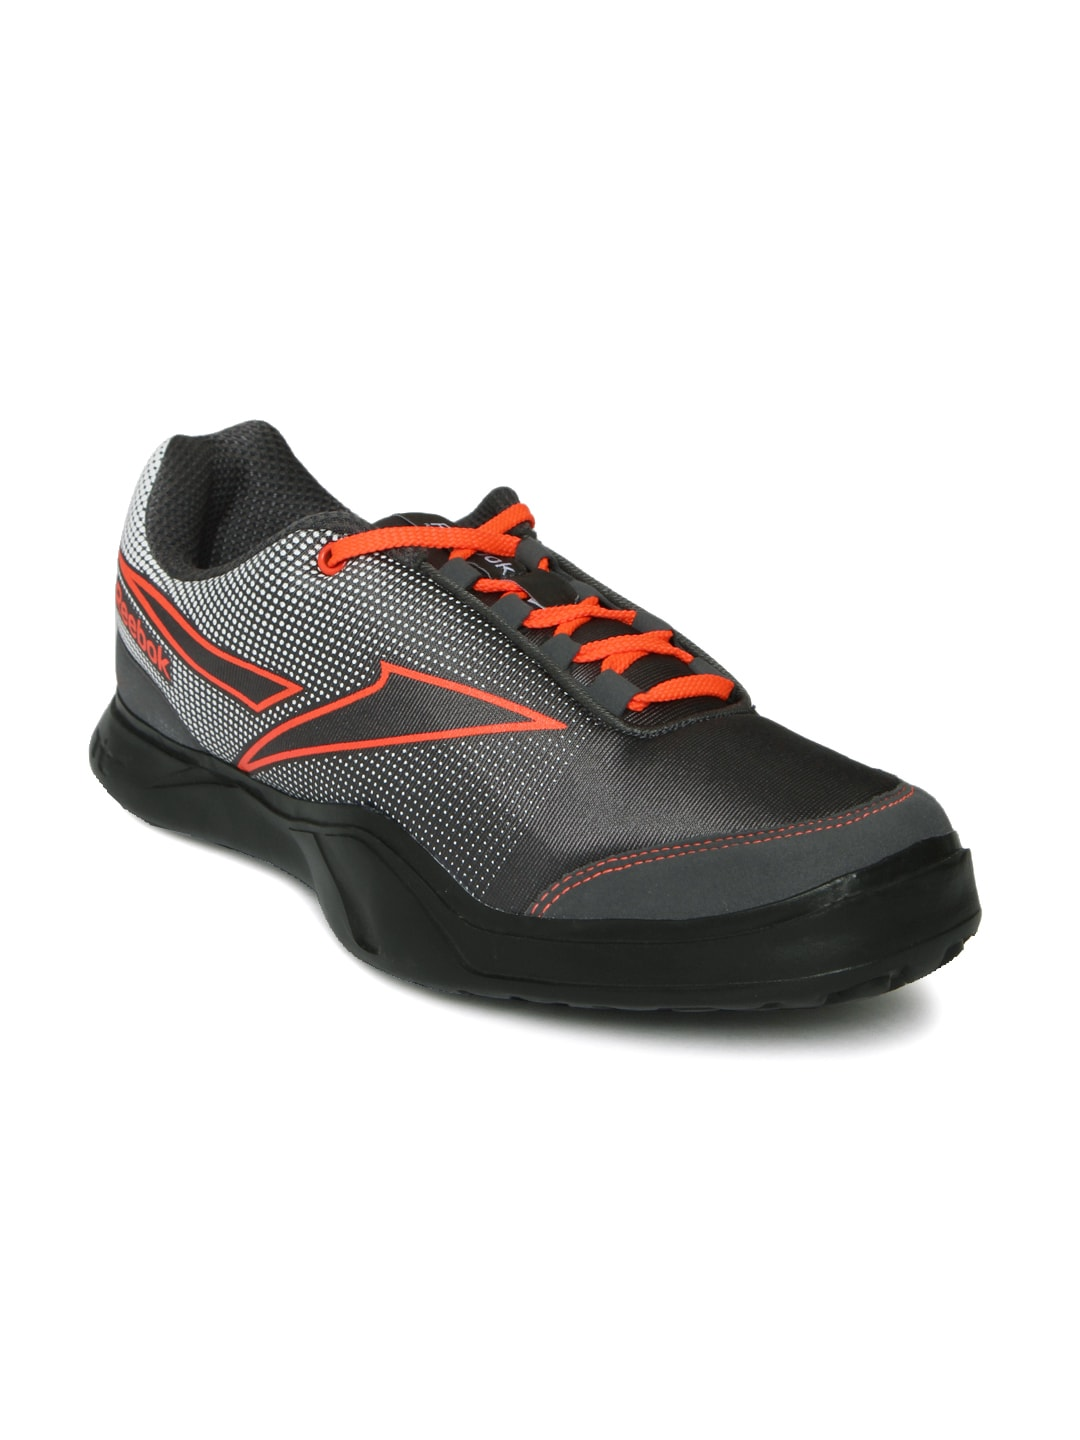 best website 10e88 27a64 Reebok bd3712 Men Charcoal Grey And White Athletic Run 2 0 Running Shoes-  Price in India